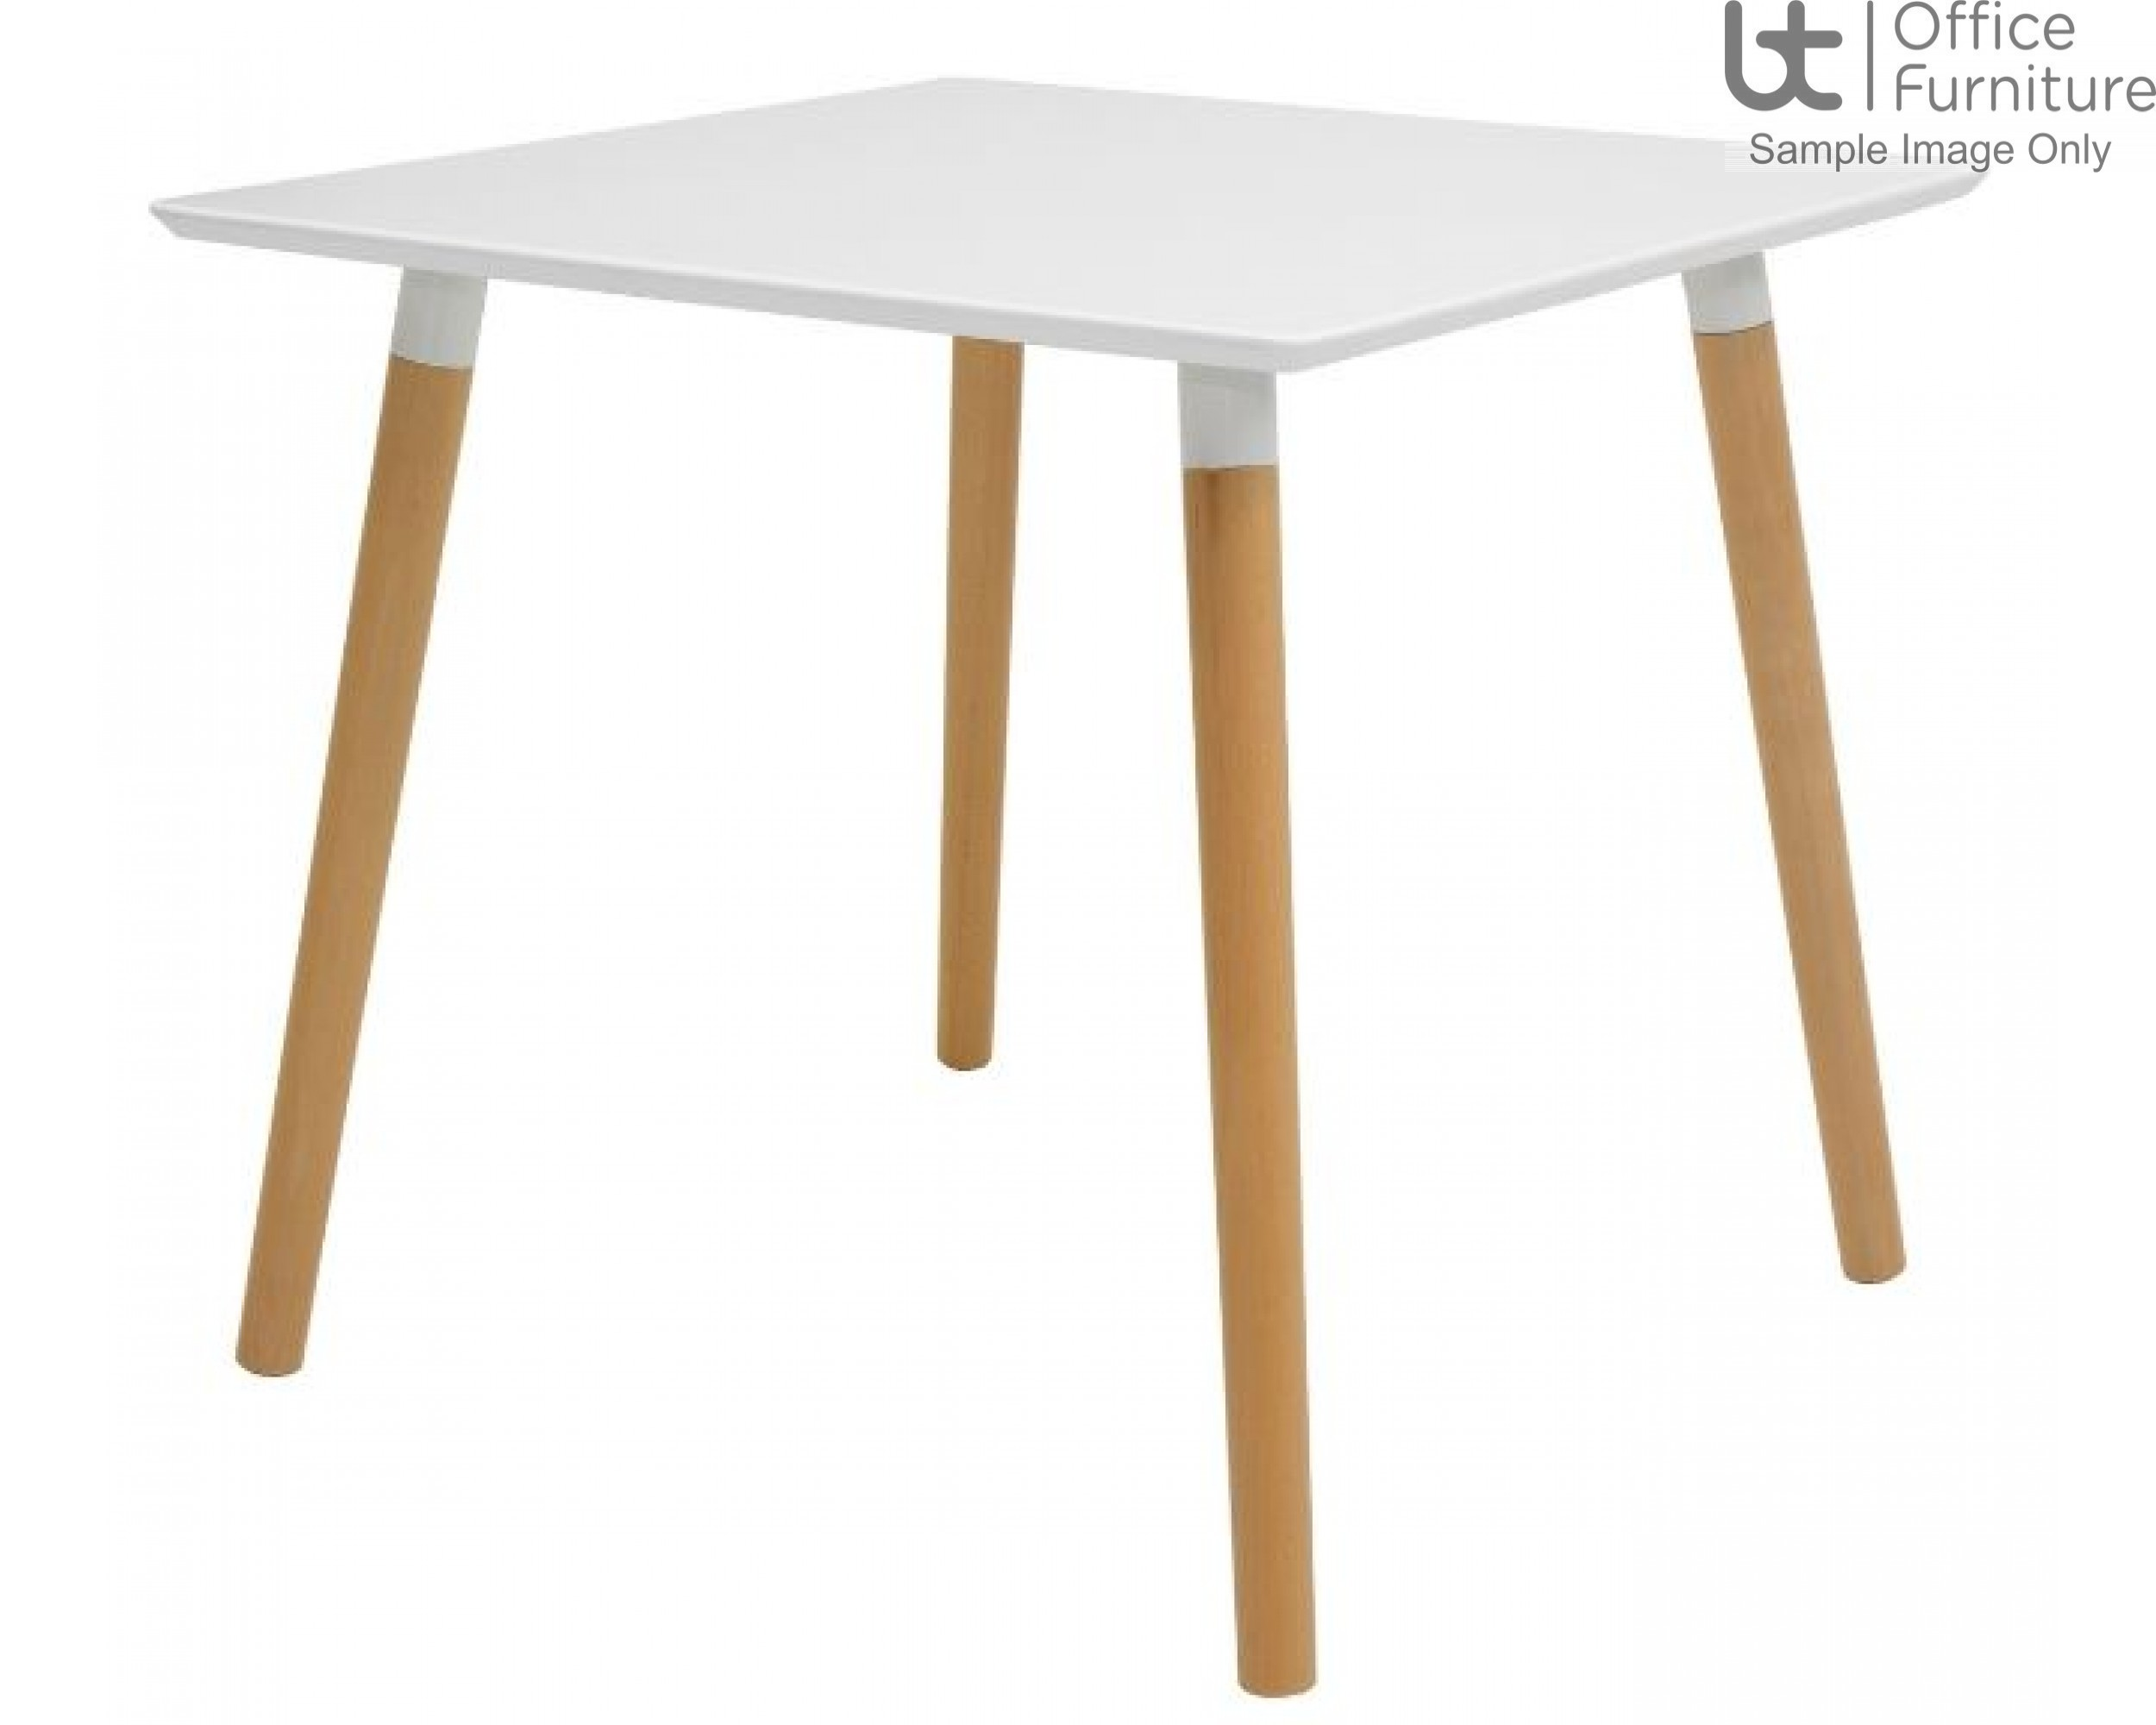 Elite Modular Meeting Table - Tondo Square Table with round Solid Beech Wooden Legs & White Tops